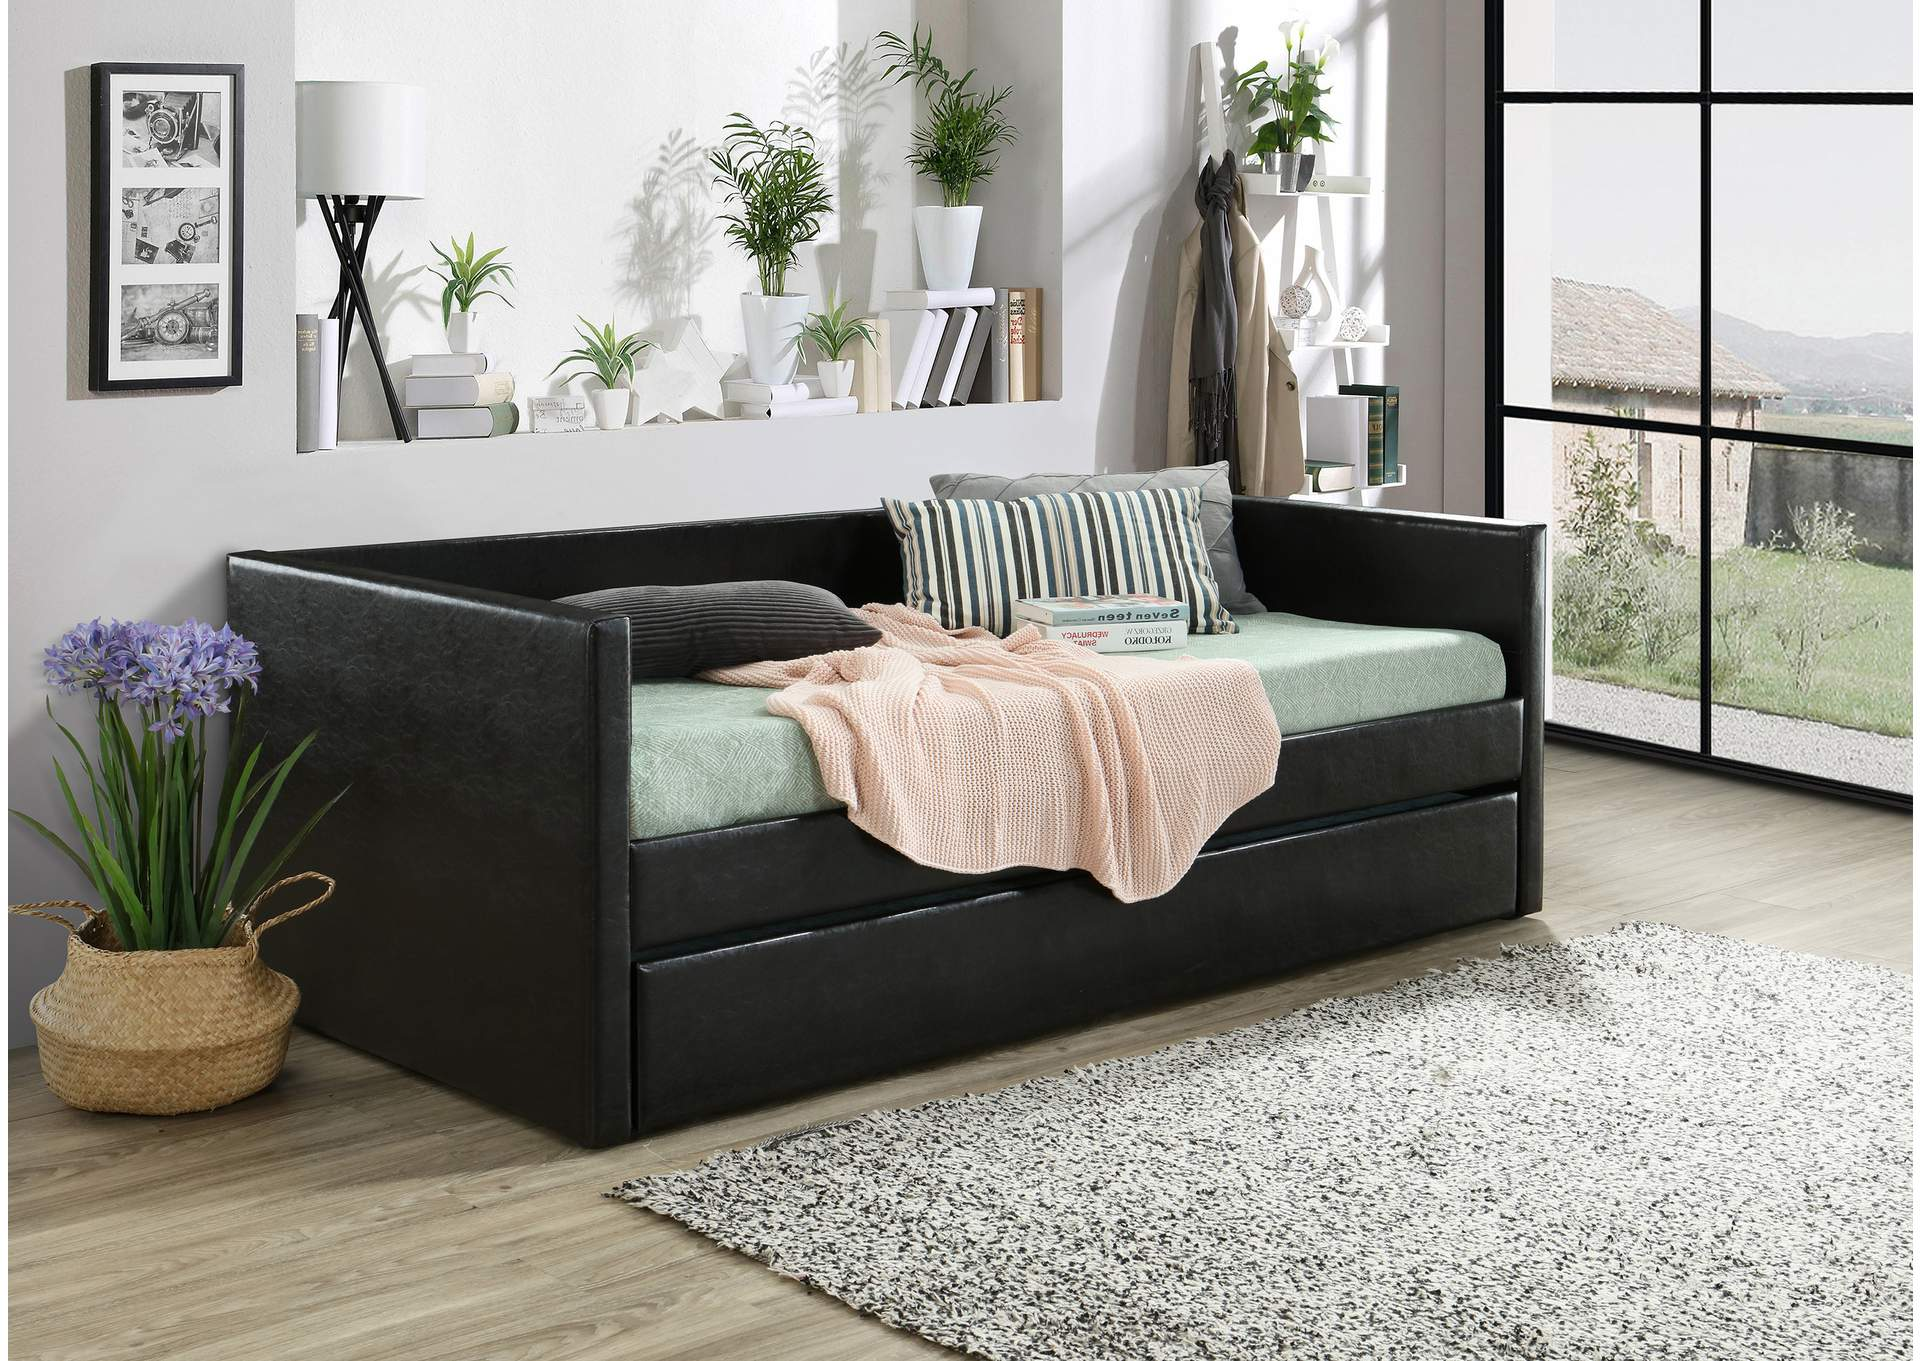 Sadie Grey Upholstered Daybed,Crown Mark